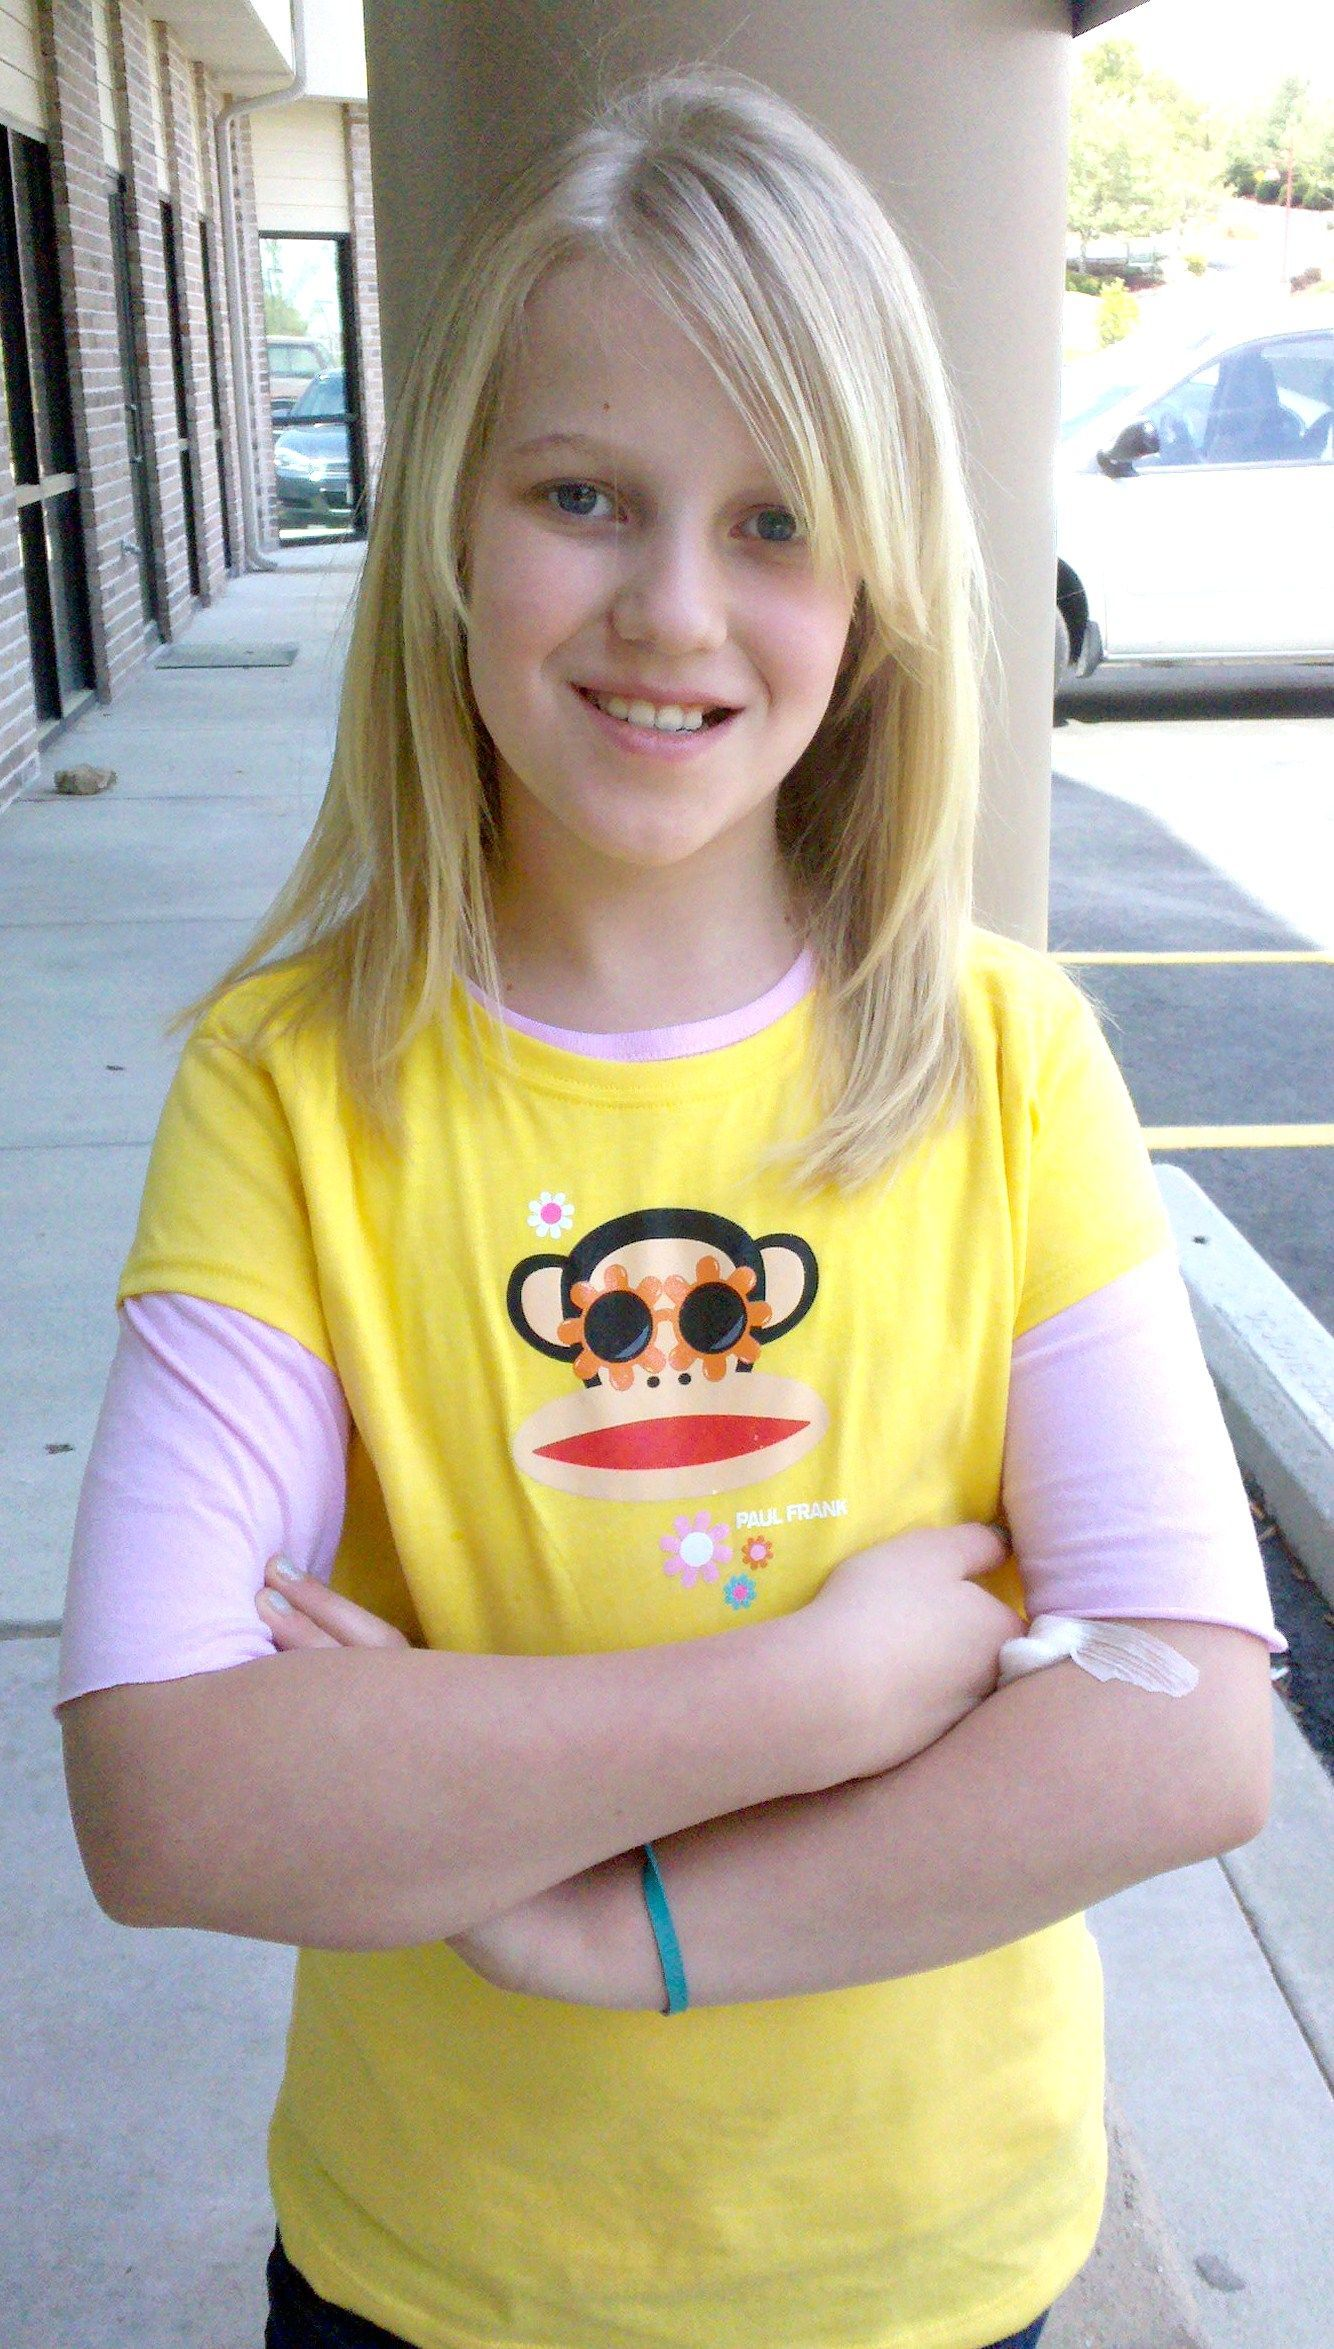 47 Popular Cute 10 Yr Old Girl Hairstyles Image In 2021 Girl Haircuts 10 Year Old Girl Girl Hairstyles